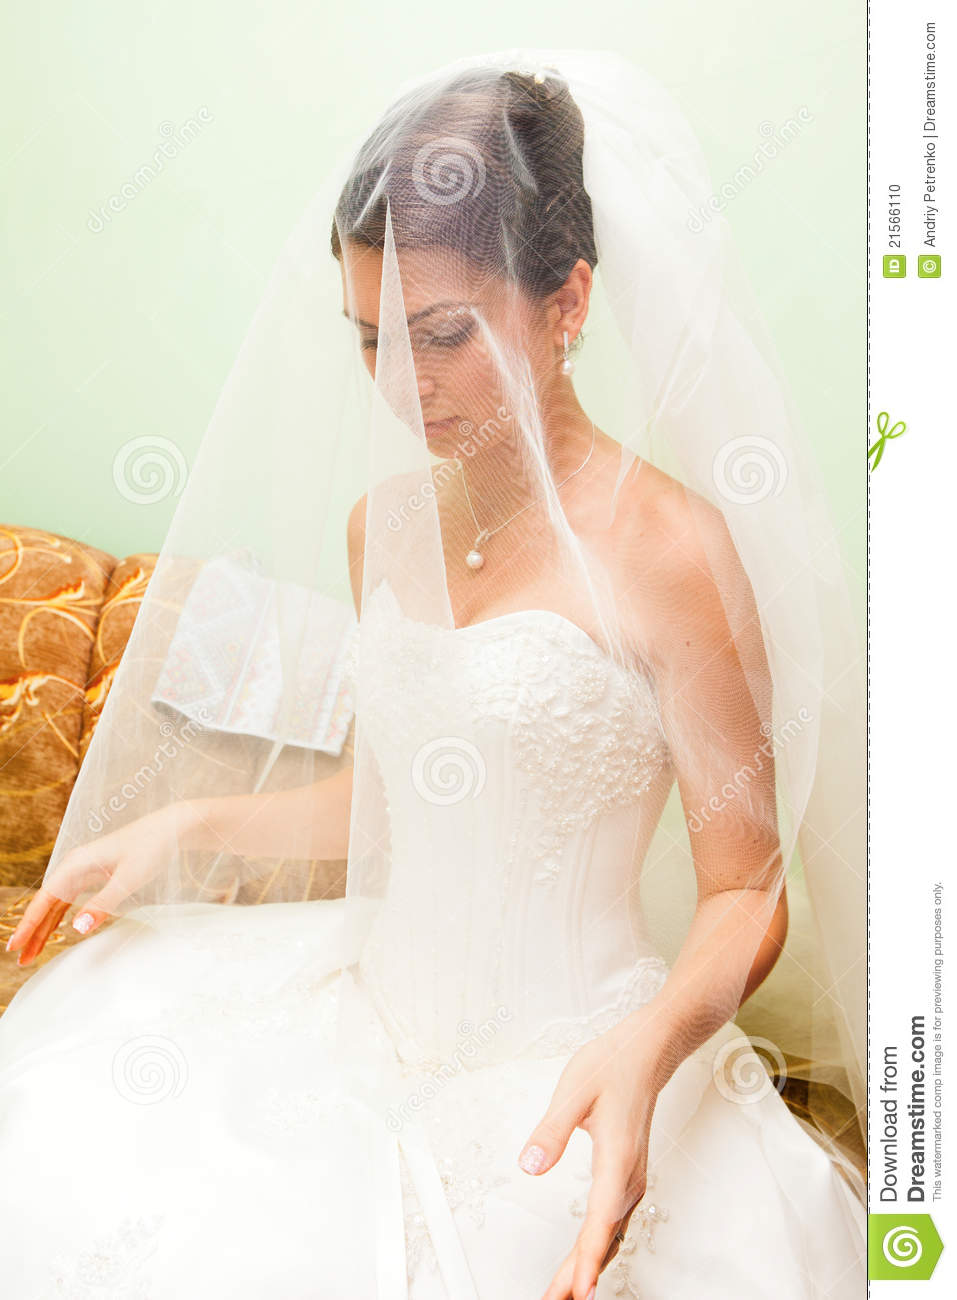 Beautiful woman in a wedding dress stock photo image for Woman in wedding dress